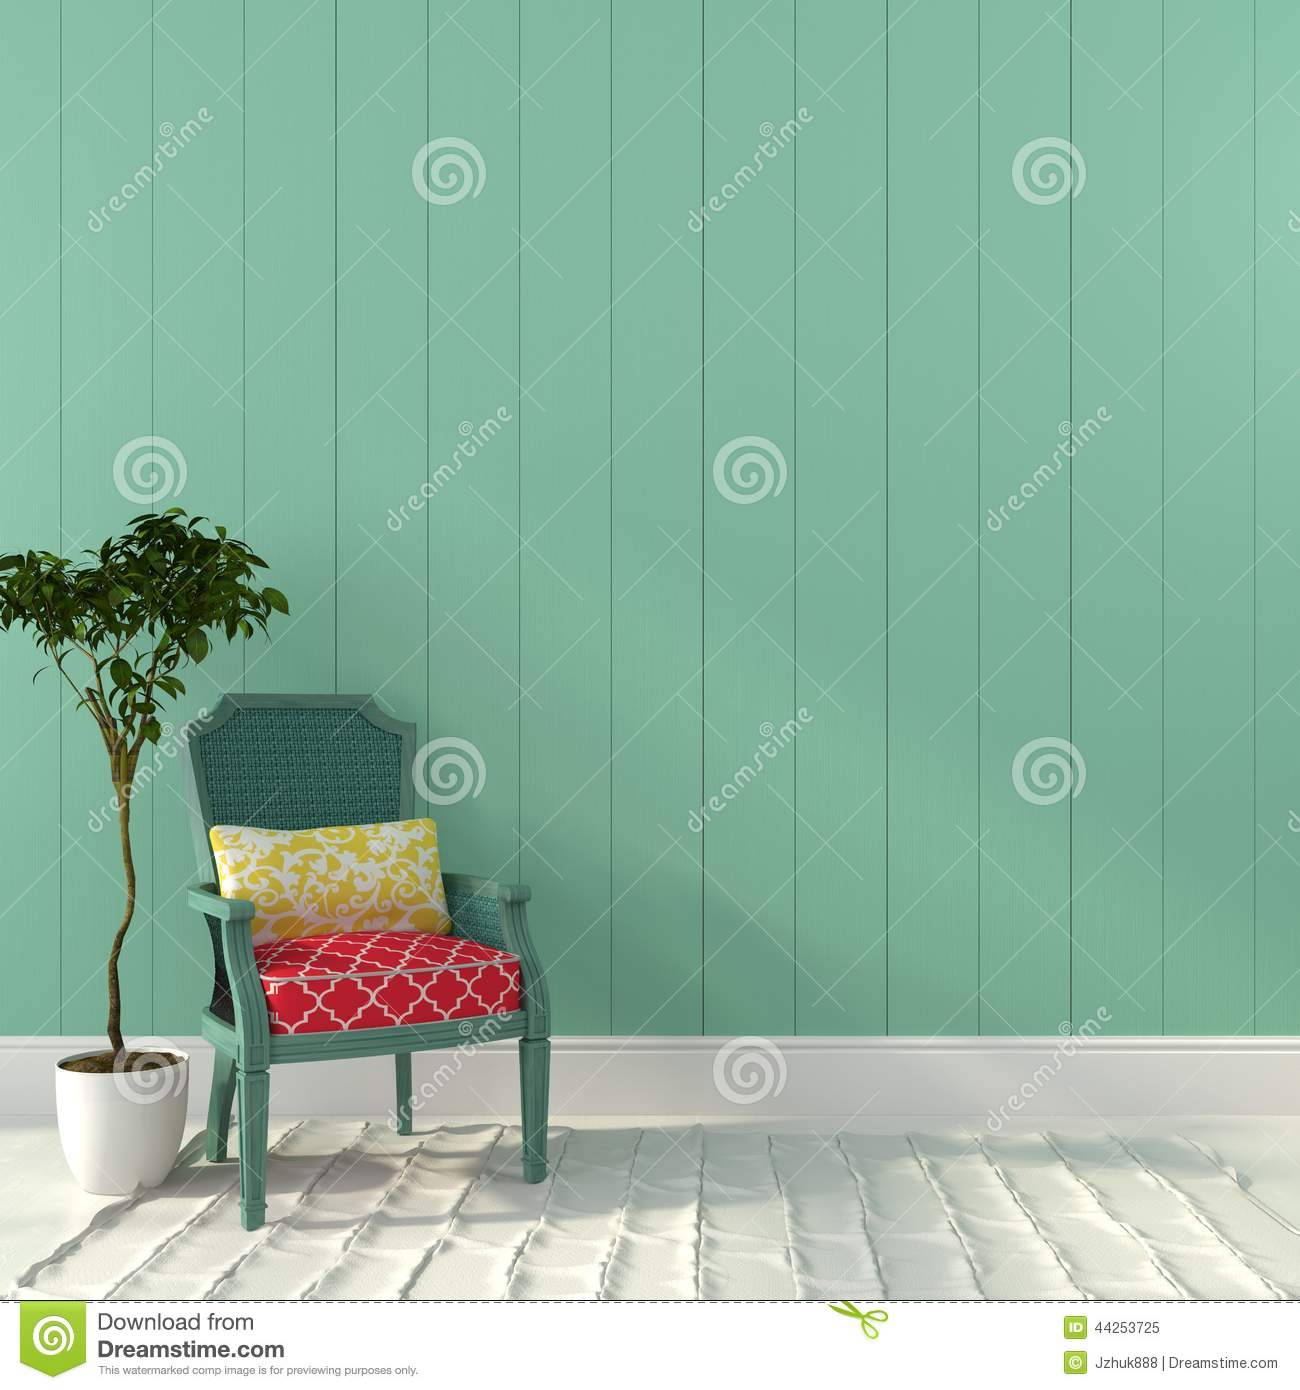 vintage turquoise chair with colorful decor stock photo - image